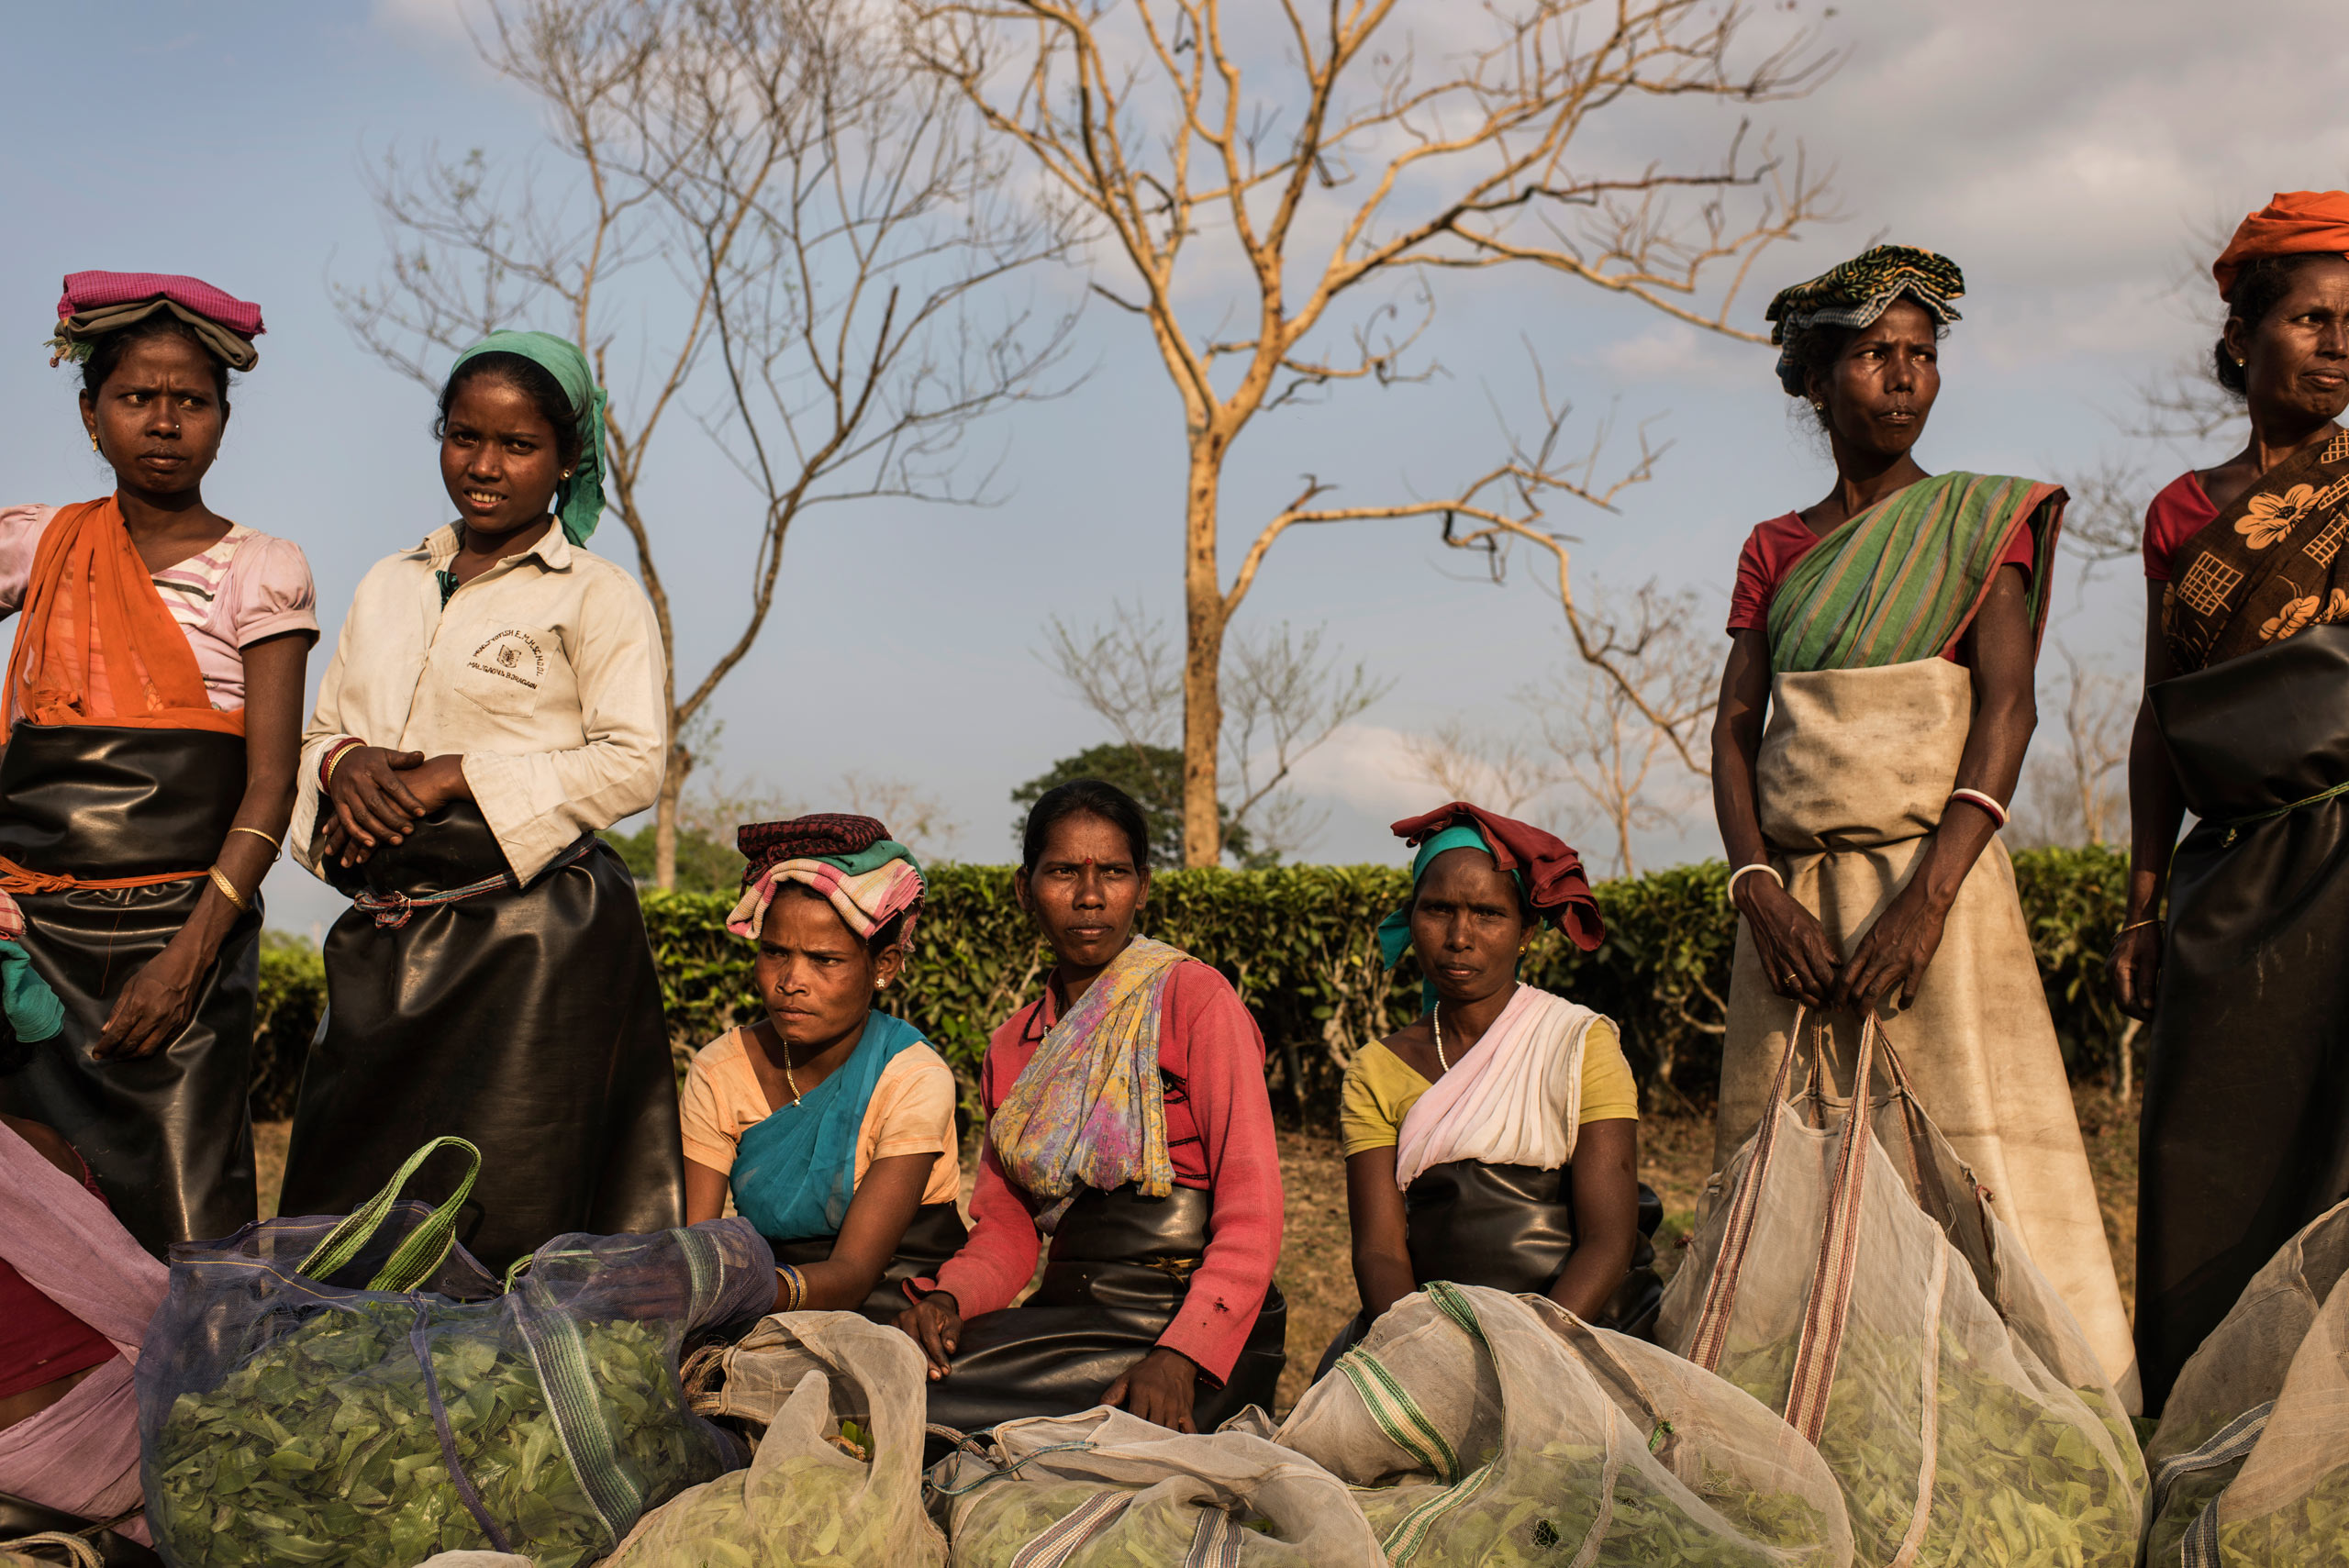 Indian women wait to weigh their tealeaves at the end of a workday on a tea plantation in the Tinkharia garden in Assam, India. April 8, 2015.                                Many families in Assam work on the tea plantations, where there is a high rate of pregnant and lactating women. Women are severely anemic due to poor diets and little to no prenatal care, which leads to a high number of pregnancy complications.